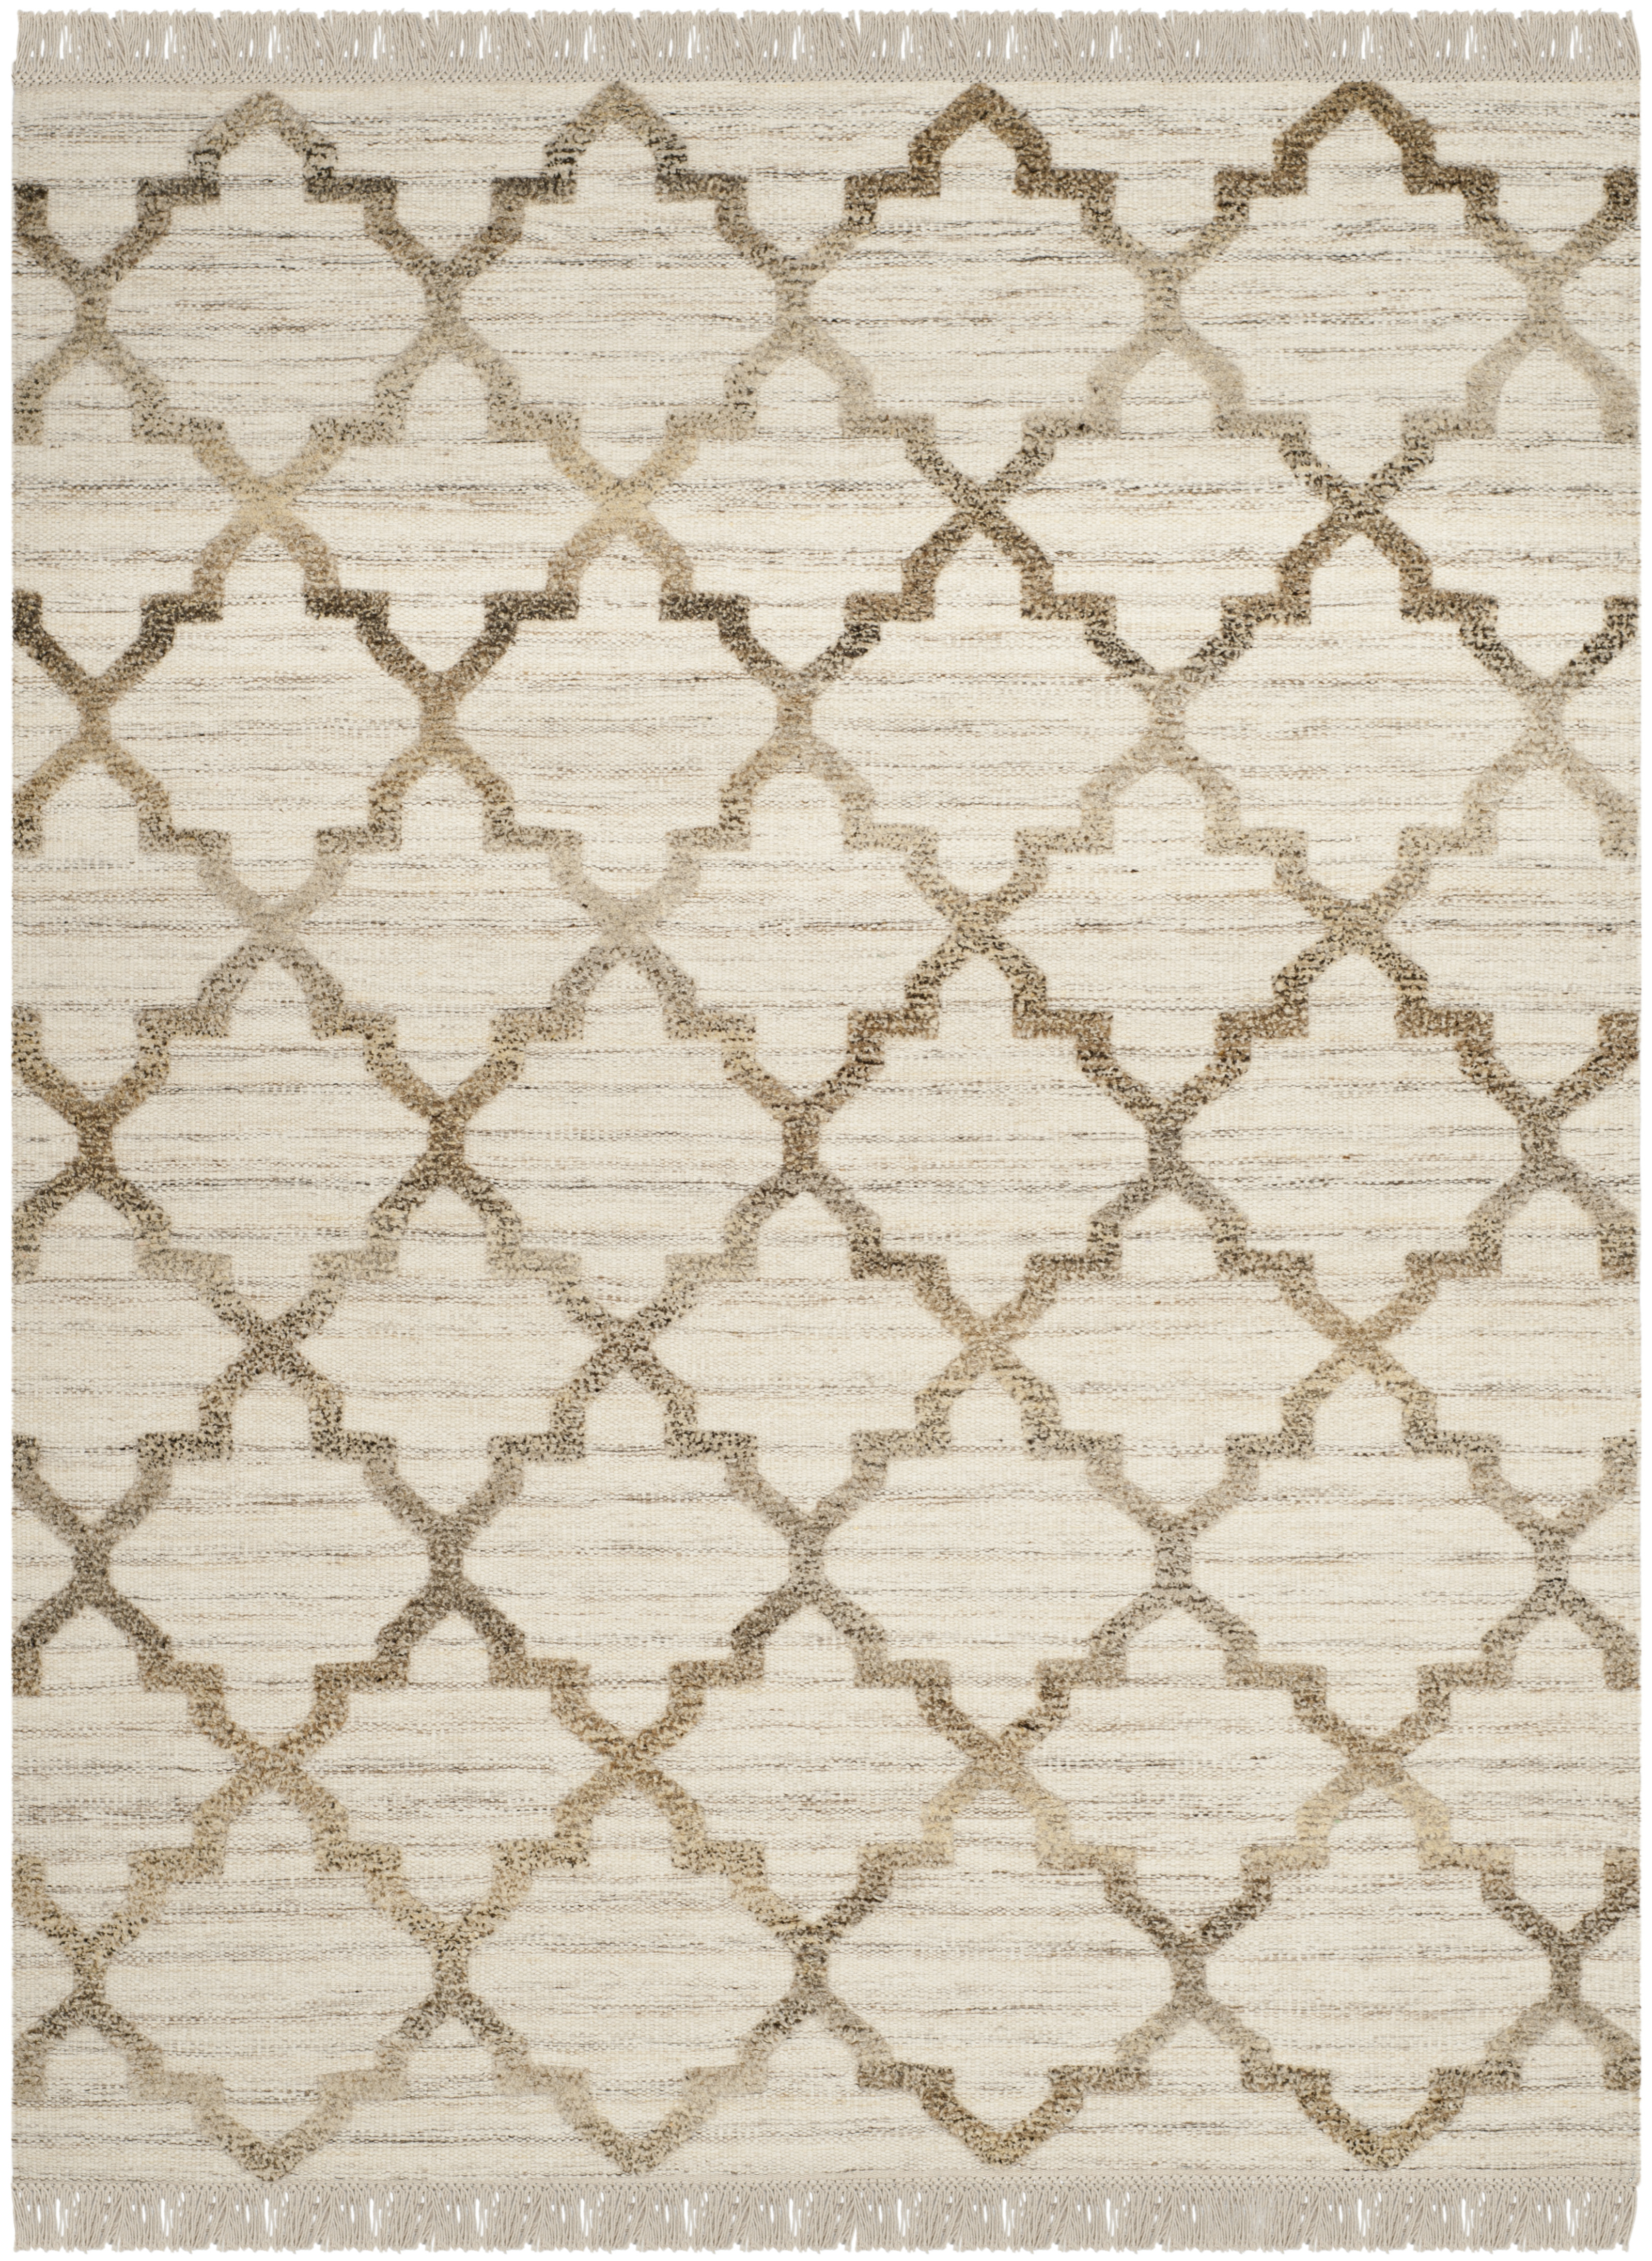 Gypsy 825 5' X 8' Natural Wool Rug